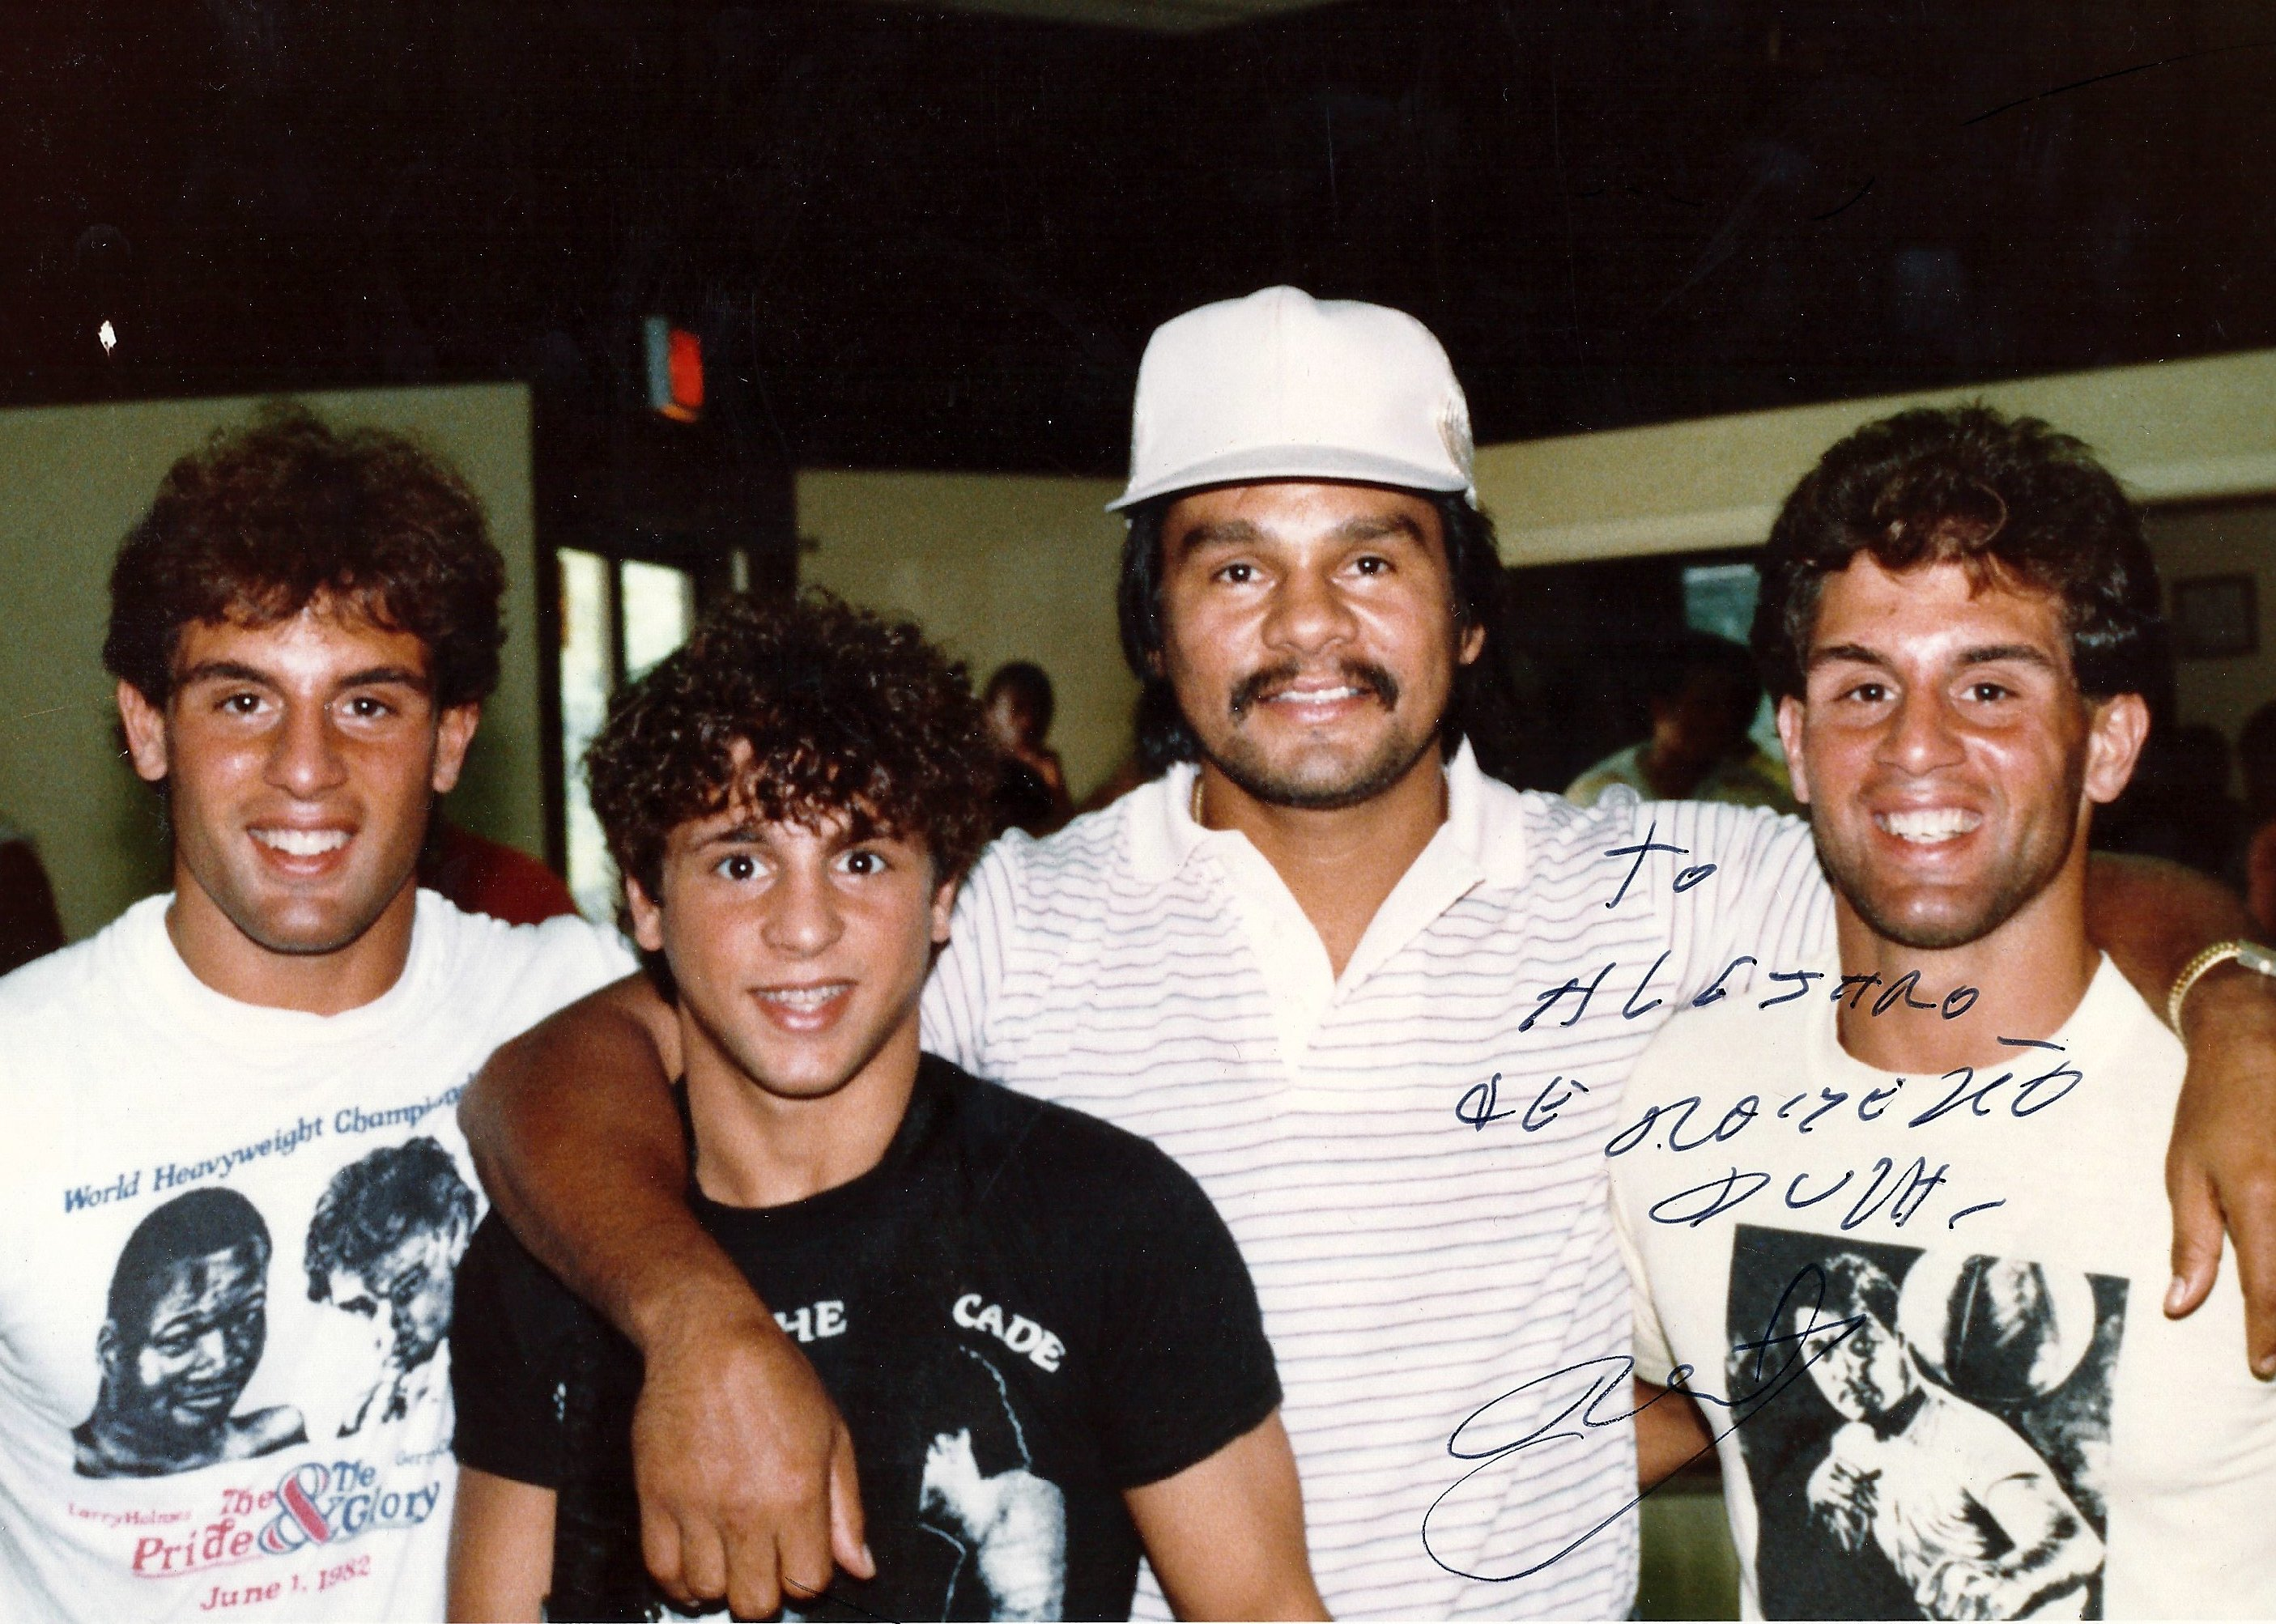 Roberto Duran surrounded by Alex, Gerard, and John Rinaldi in 1982